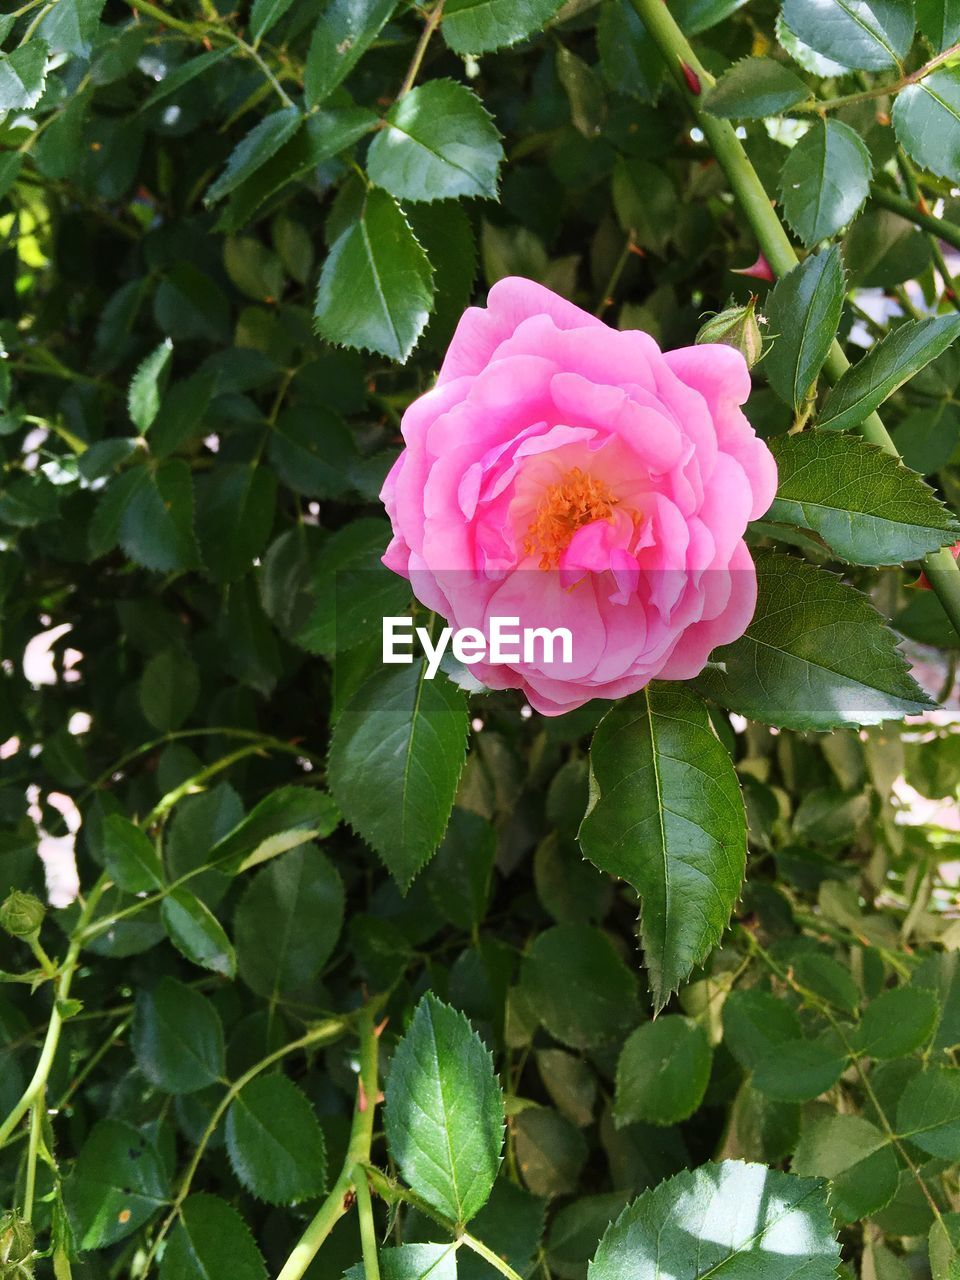 plant, pink color, leaf, beauty in nature, plant part, rose, flower, flowering plant, growth, freshness, close-up, vulnerability, petal, fragility, flower head, rose - flower, inflorescence, day, nature, green color, no people, outdoors